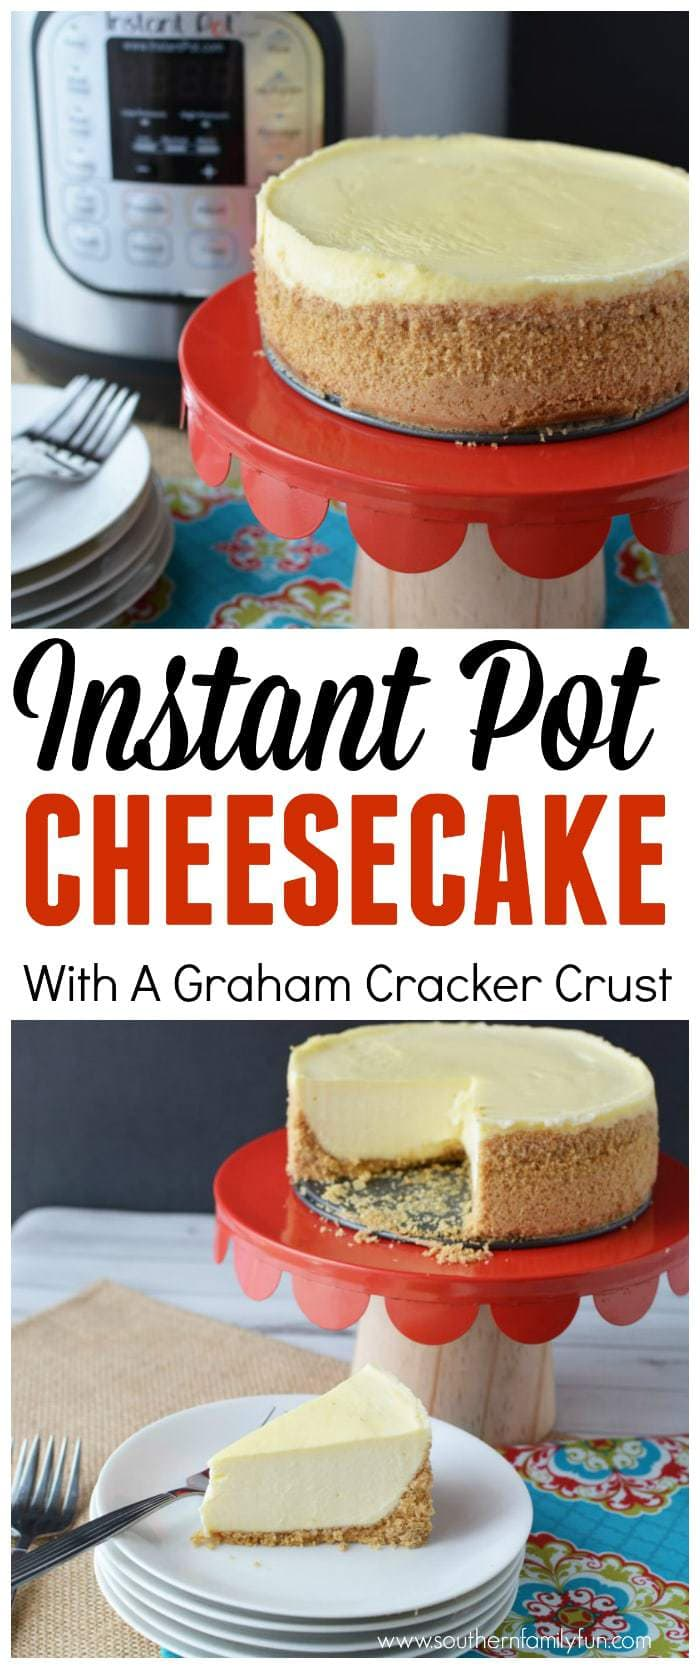 If you're craving that graham cracker crust and creamy texture, this Instant Pot Classic Cheesecake recipe will hit the spot! #Cheesecake #InstantPotCheesecake https://www.southernfamilyfun.com/instant-pot-cheesecake/